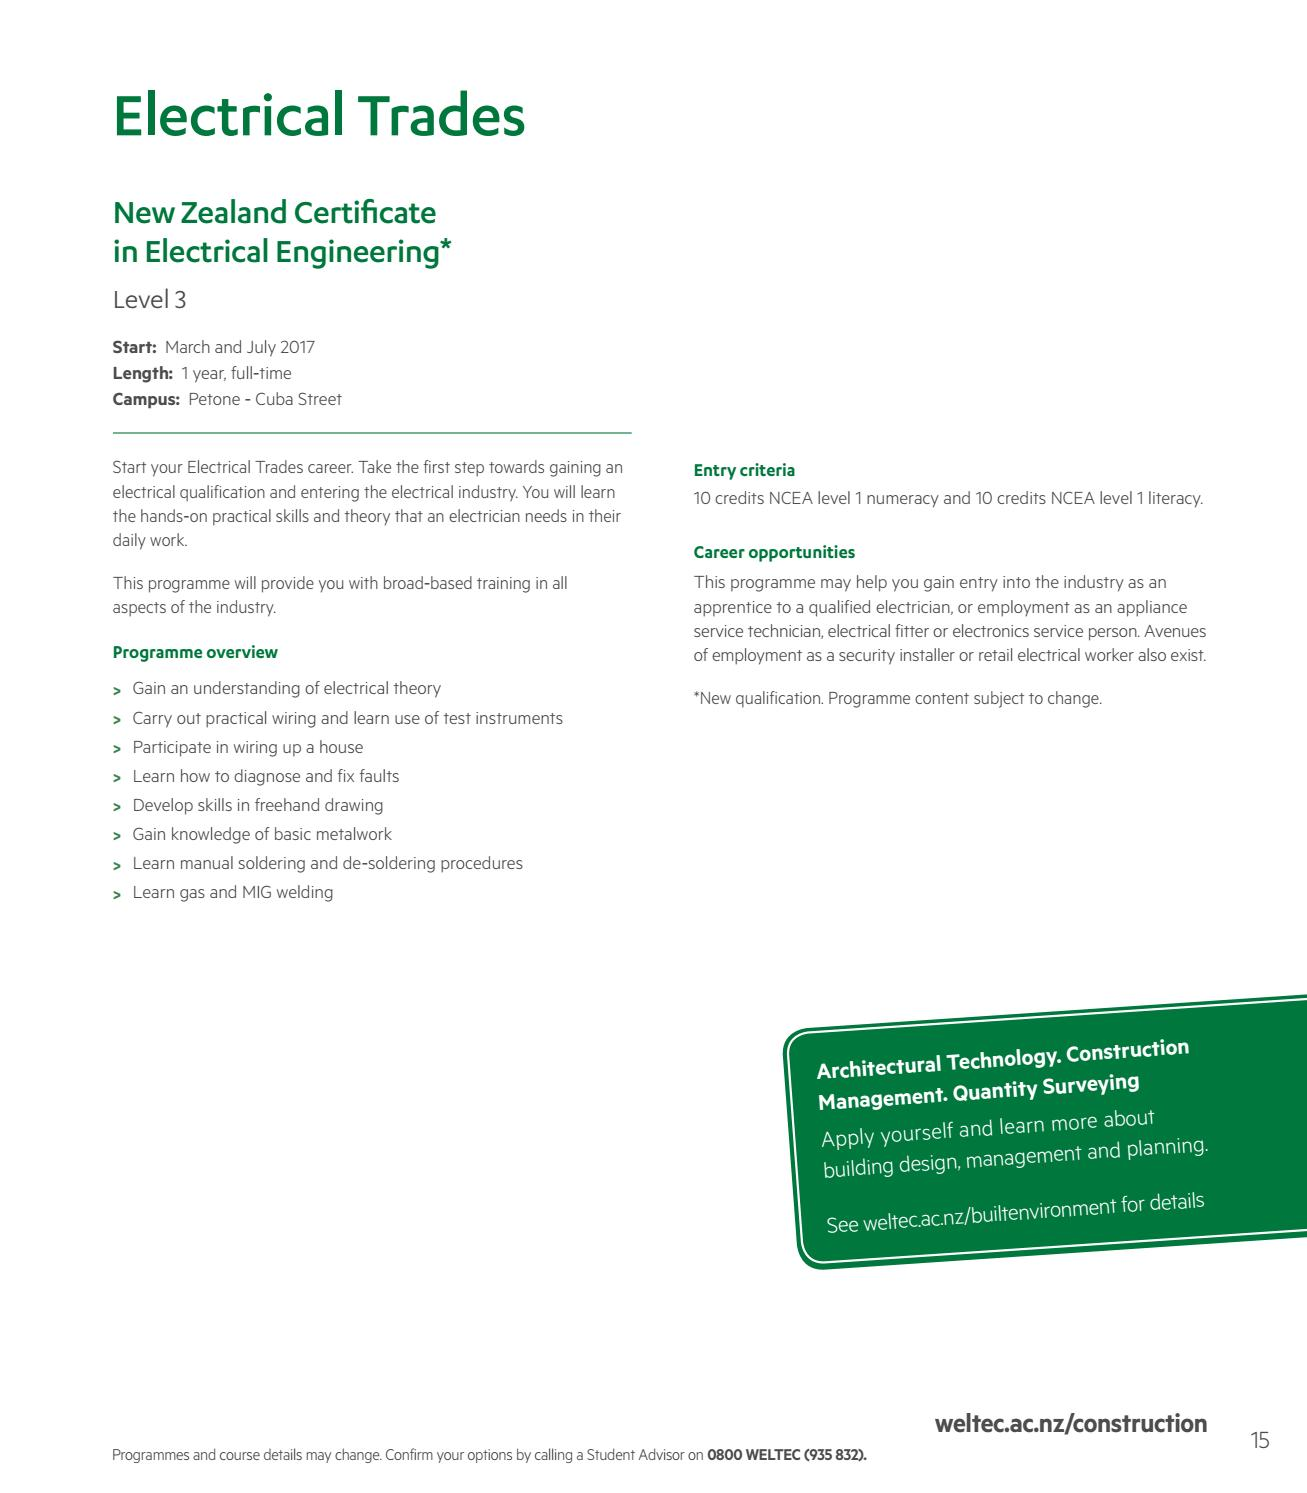 Construction Programme Guide 2016 2017 By Weltec Issuu House Wiring Procedures